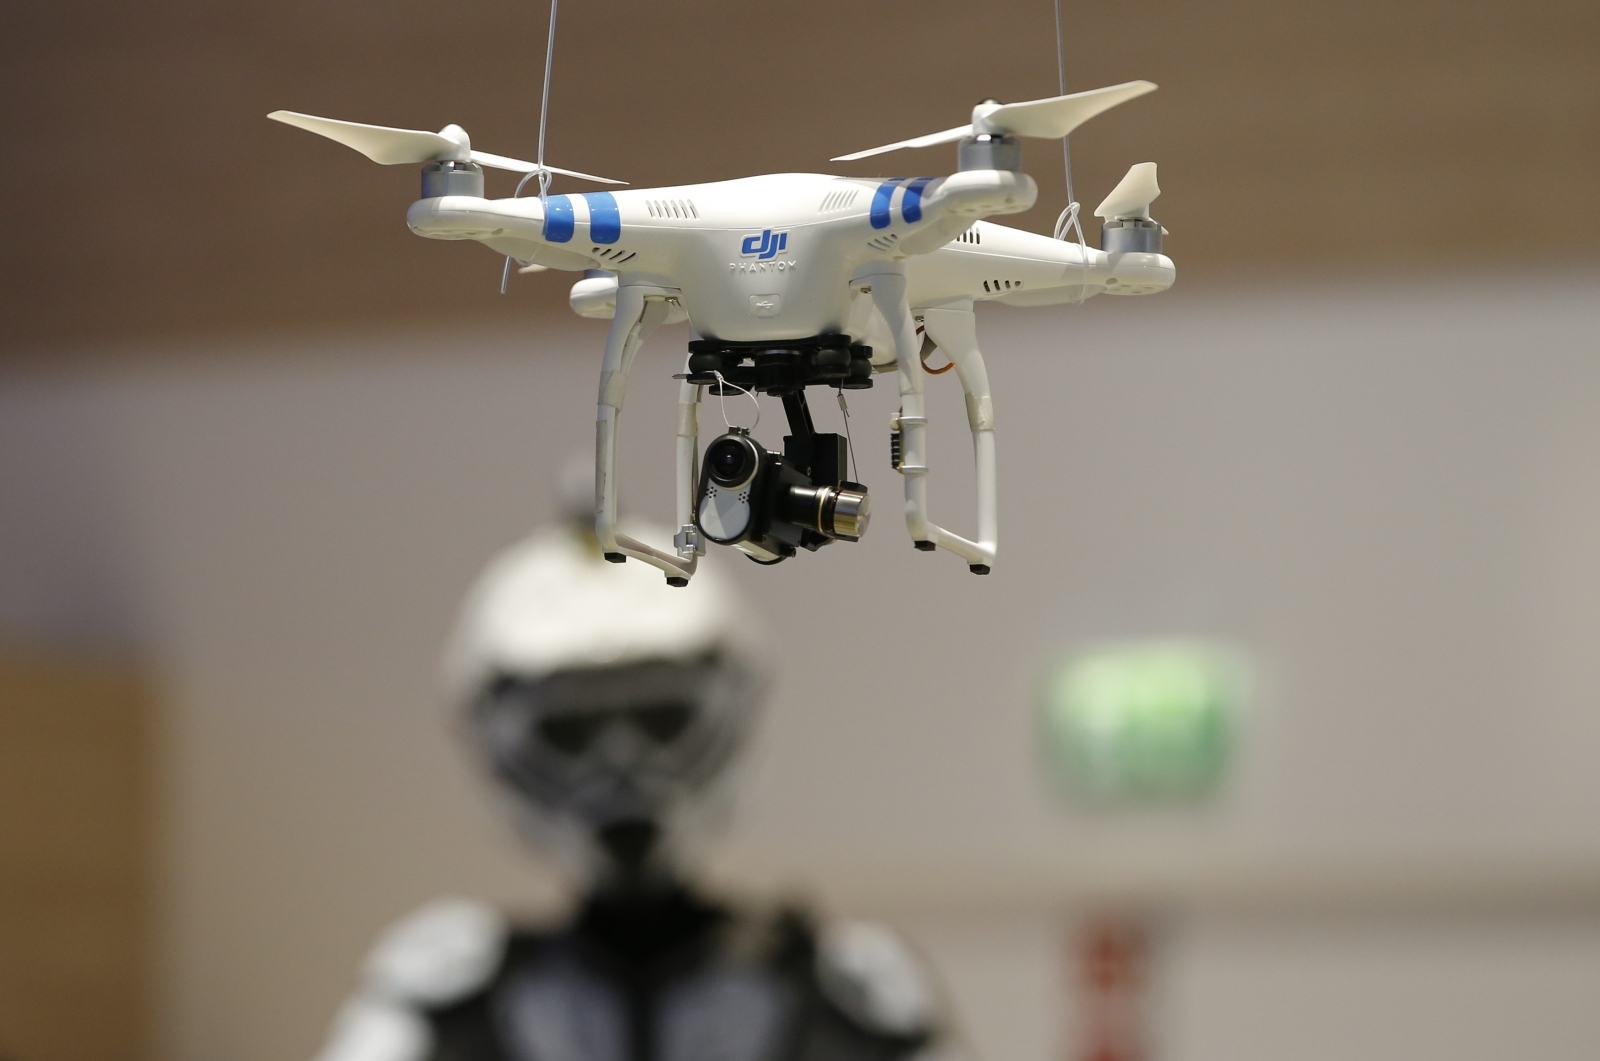 A quadcopter armed with a Sony Action Cam Mini on show at IFA in Berlin last month